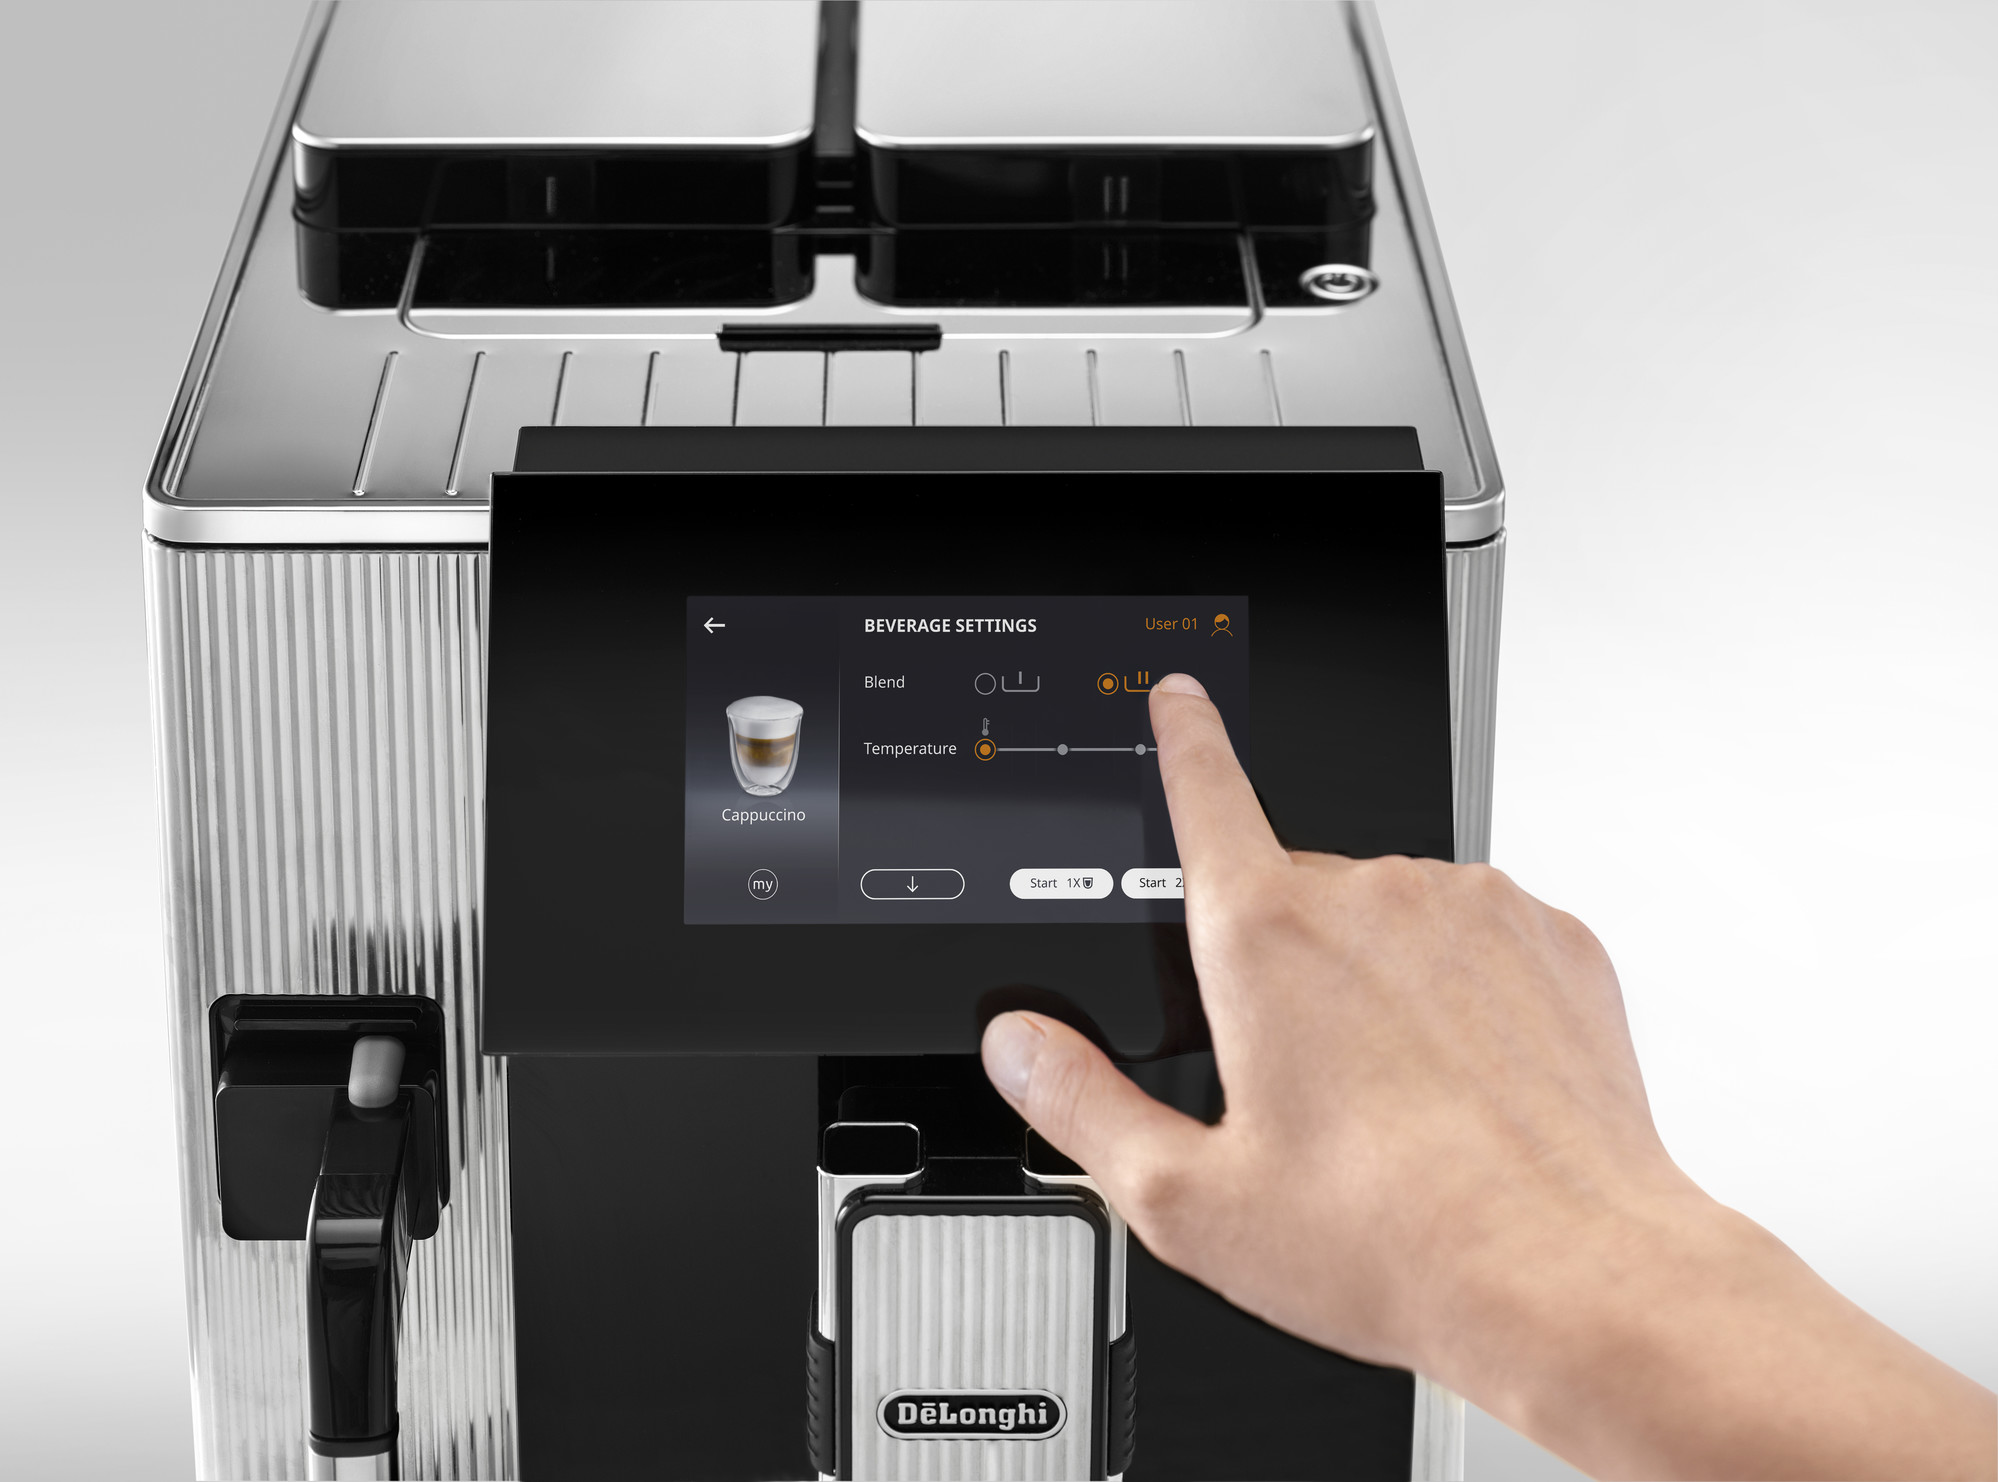 A person pressing a button on a coffee machine's display screen